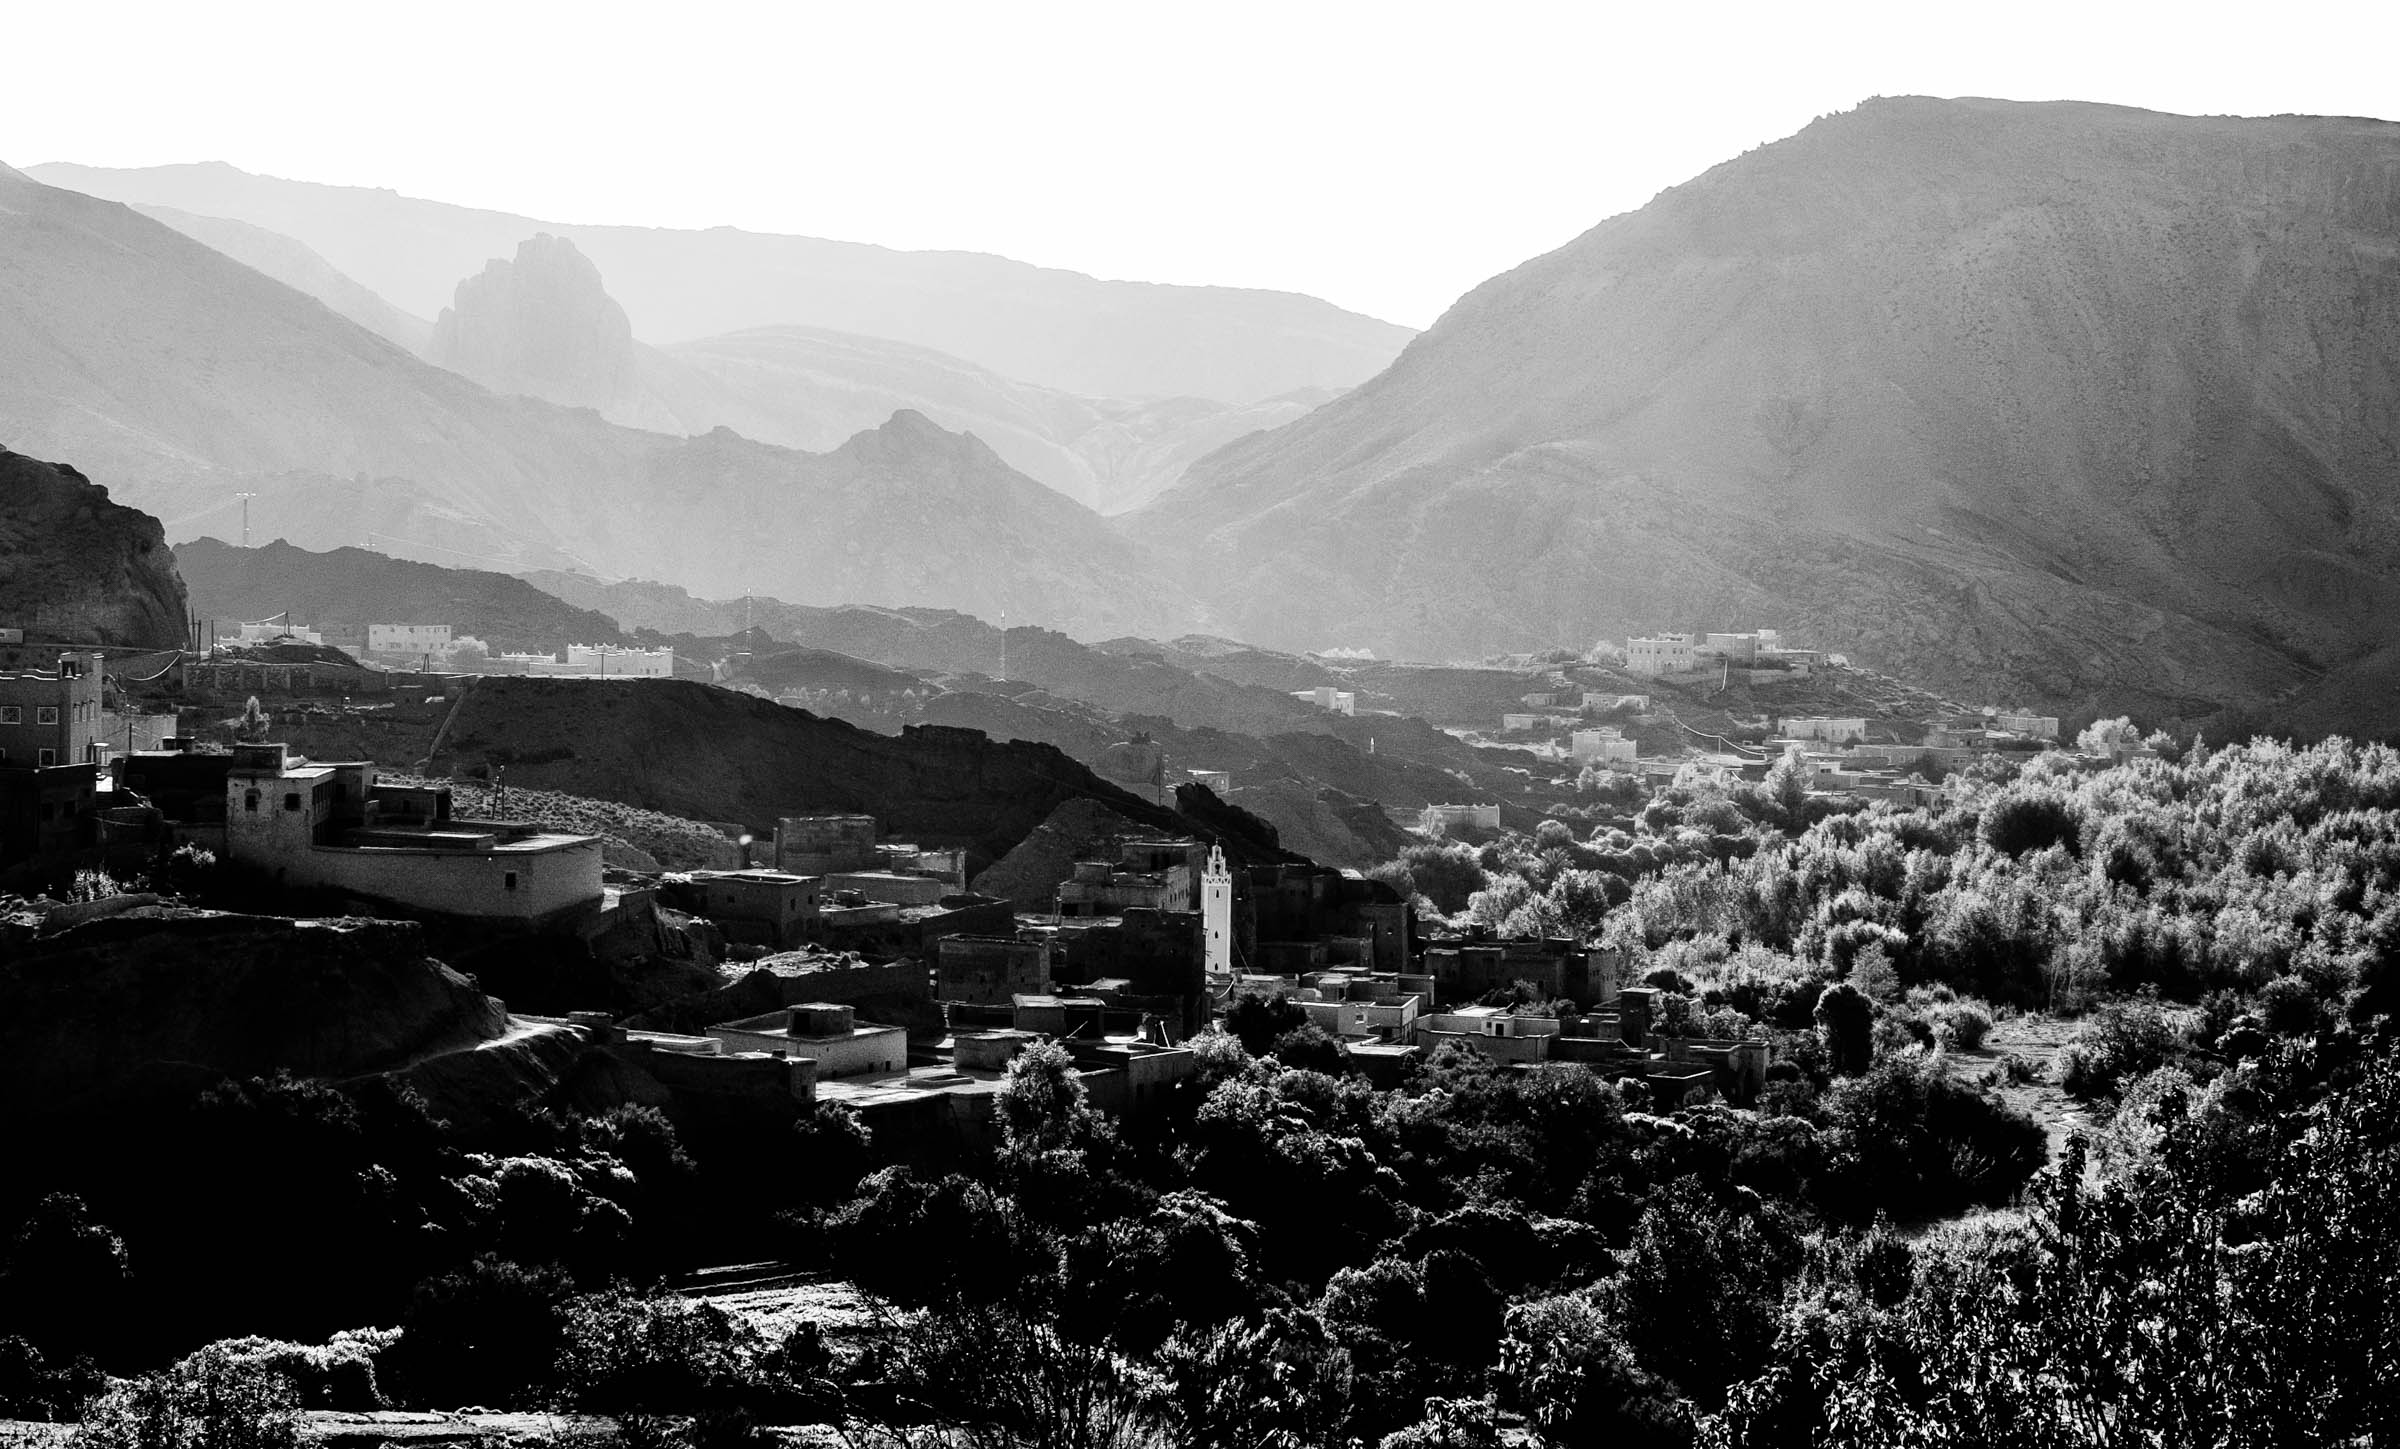 Valley of the Roses (Morocco)